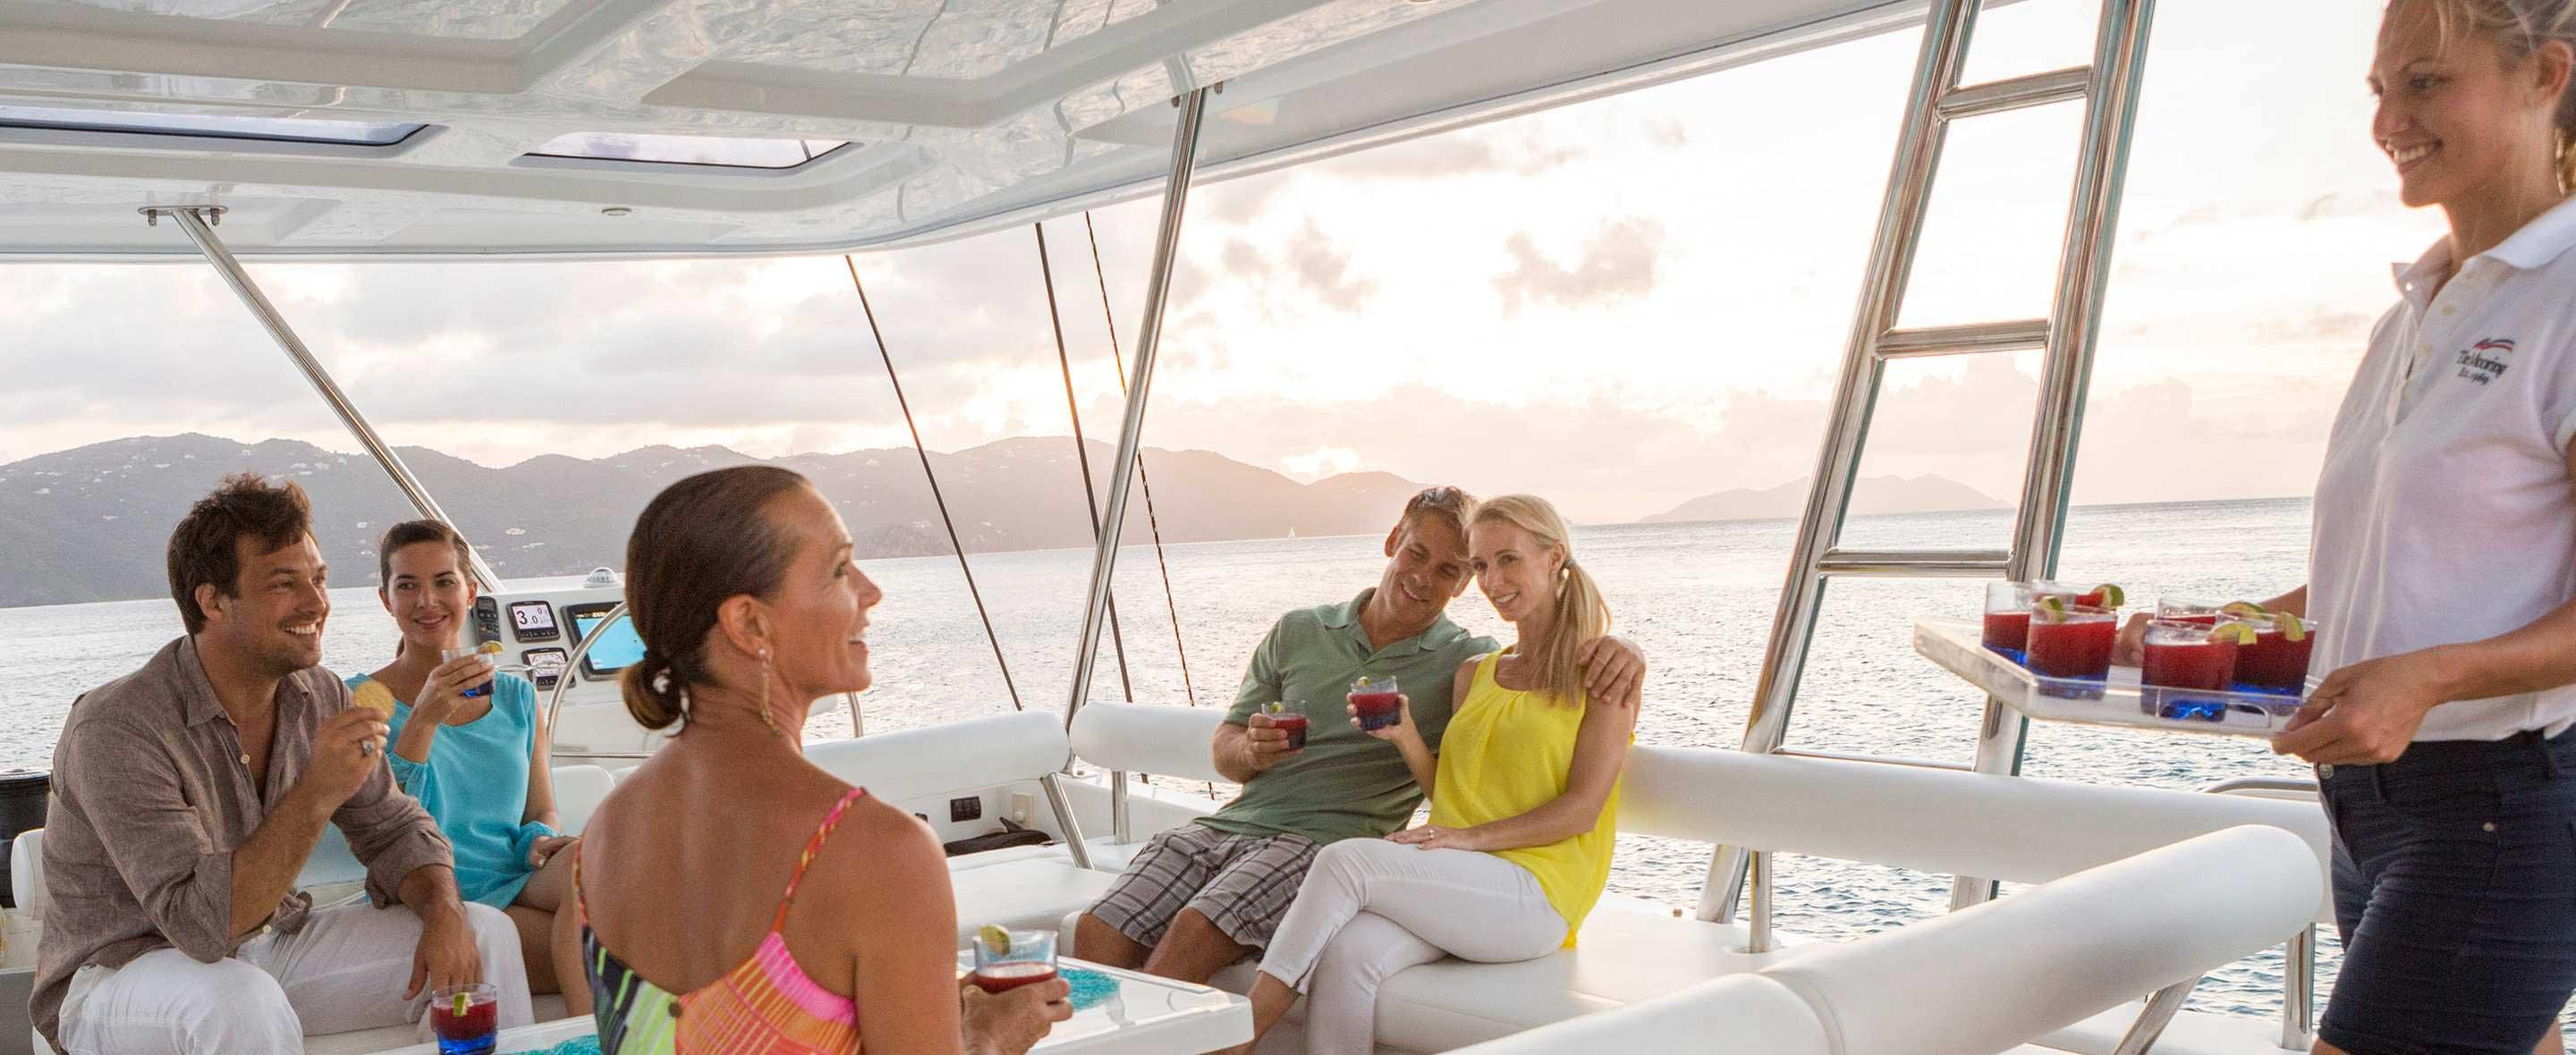 crew serving drinks on yacht